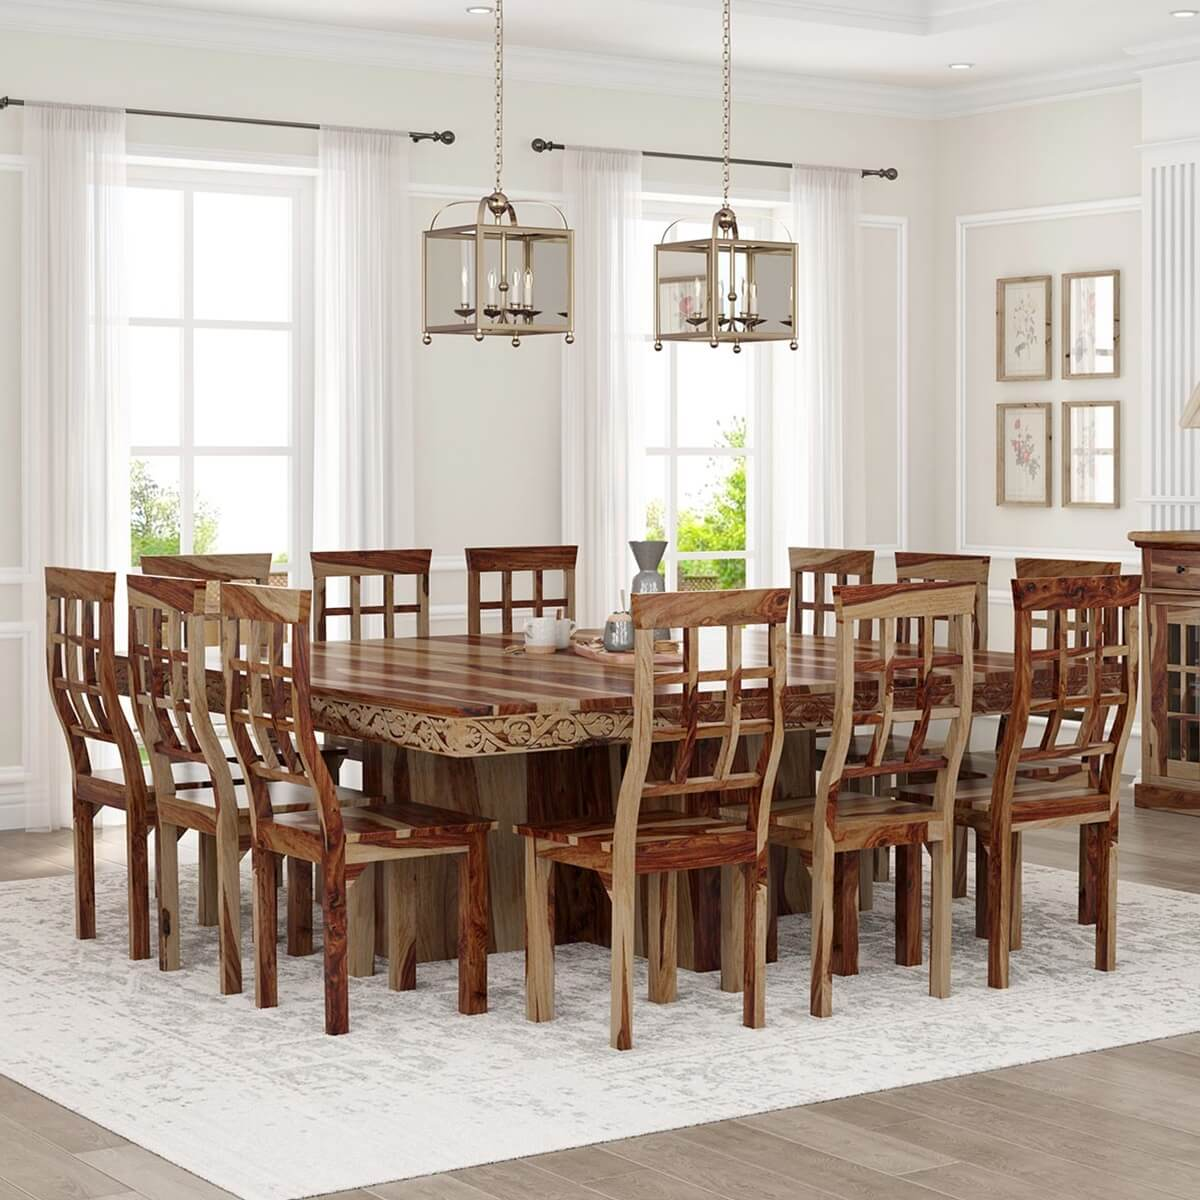 Dallas ranch large square dining room table and chair set Huge dining room table